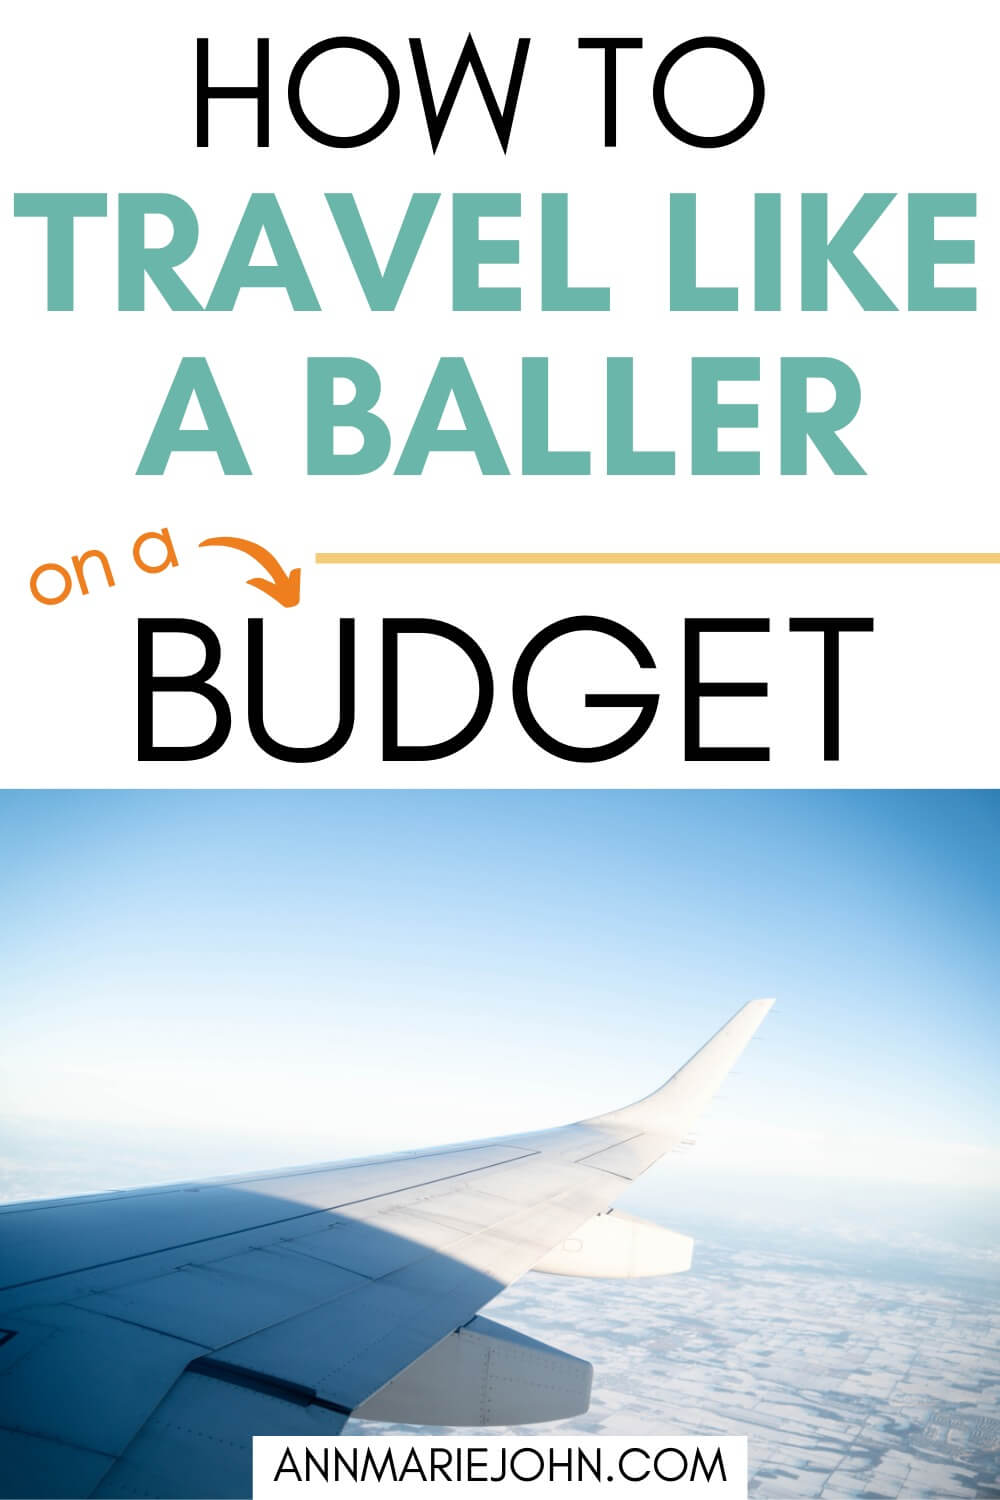 How to Travel Like a Baller on a Budget